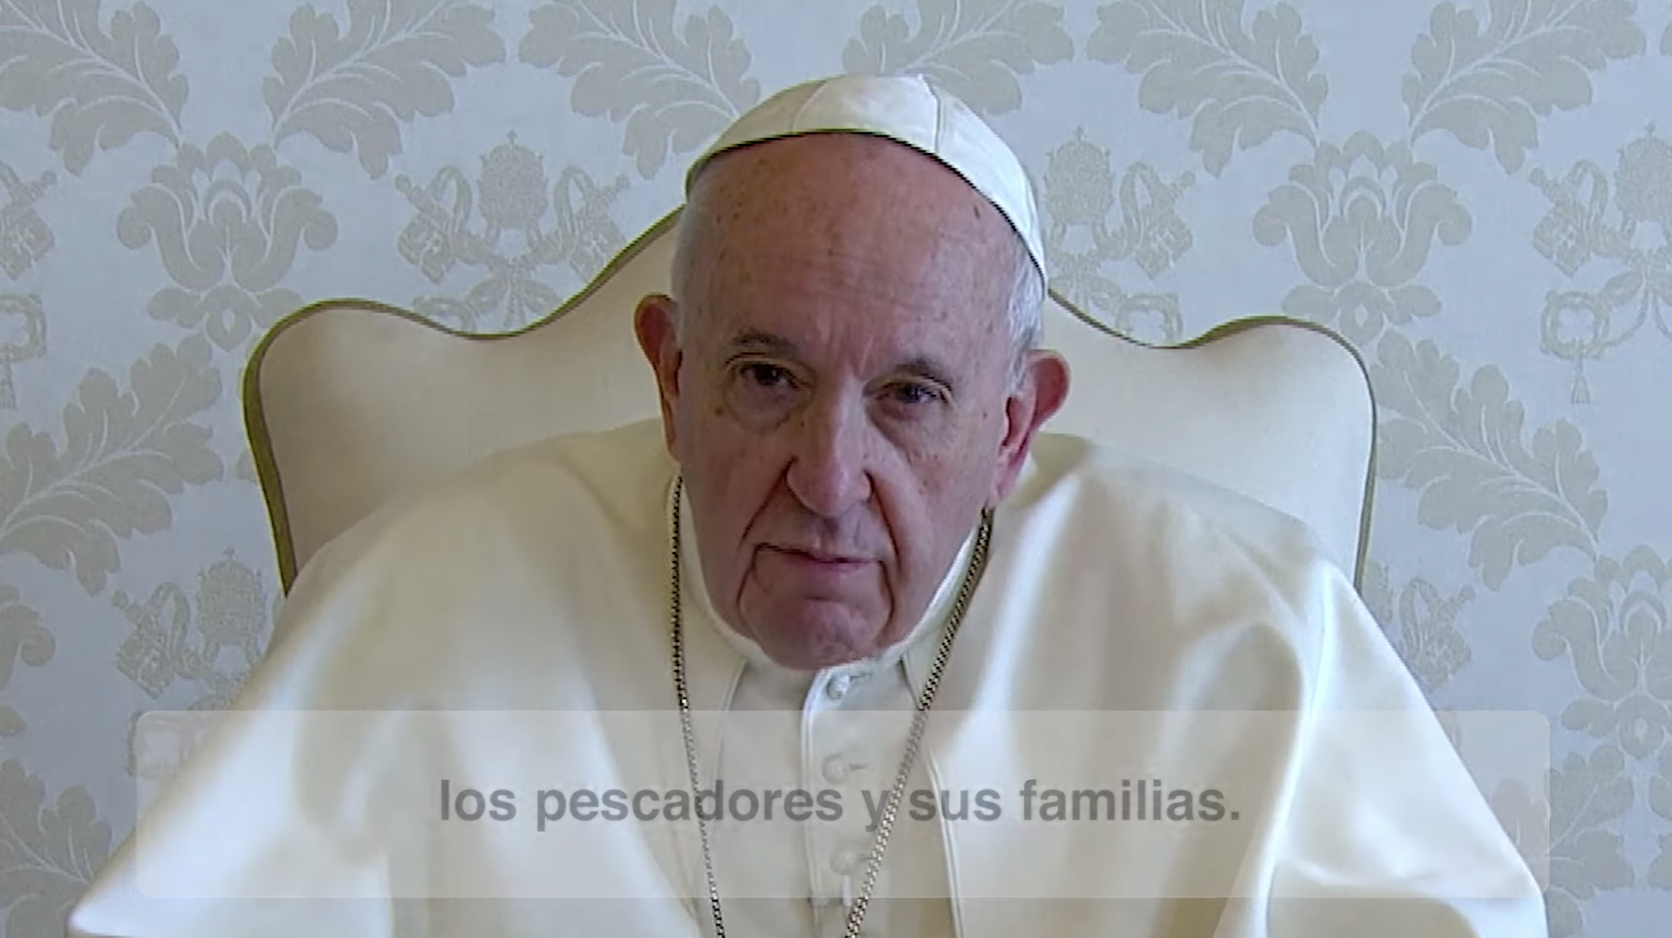 El video del Papa. Agosto 2020. El mundo del mar